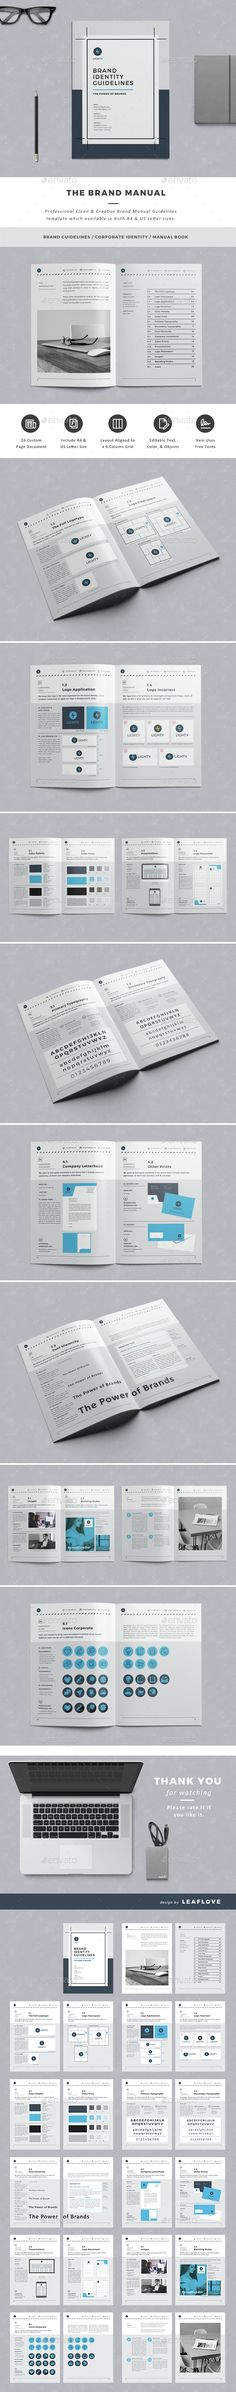 TECNOLOGIA DISEÑO ejemplo manual de identidad corporativa - professional manual template